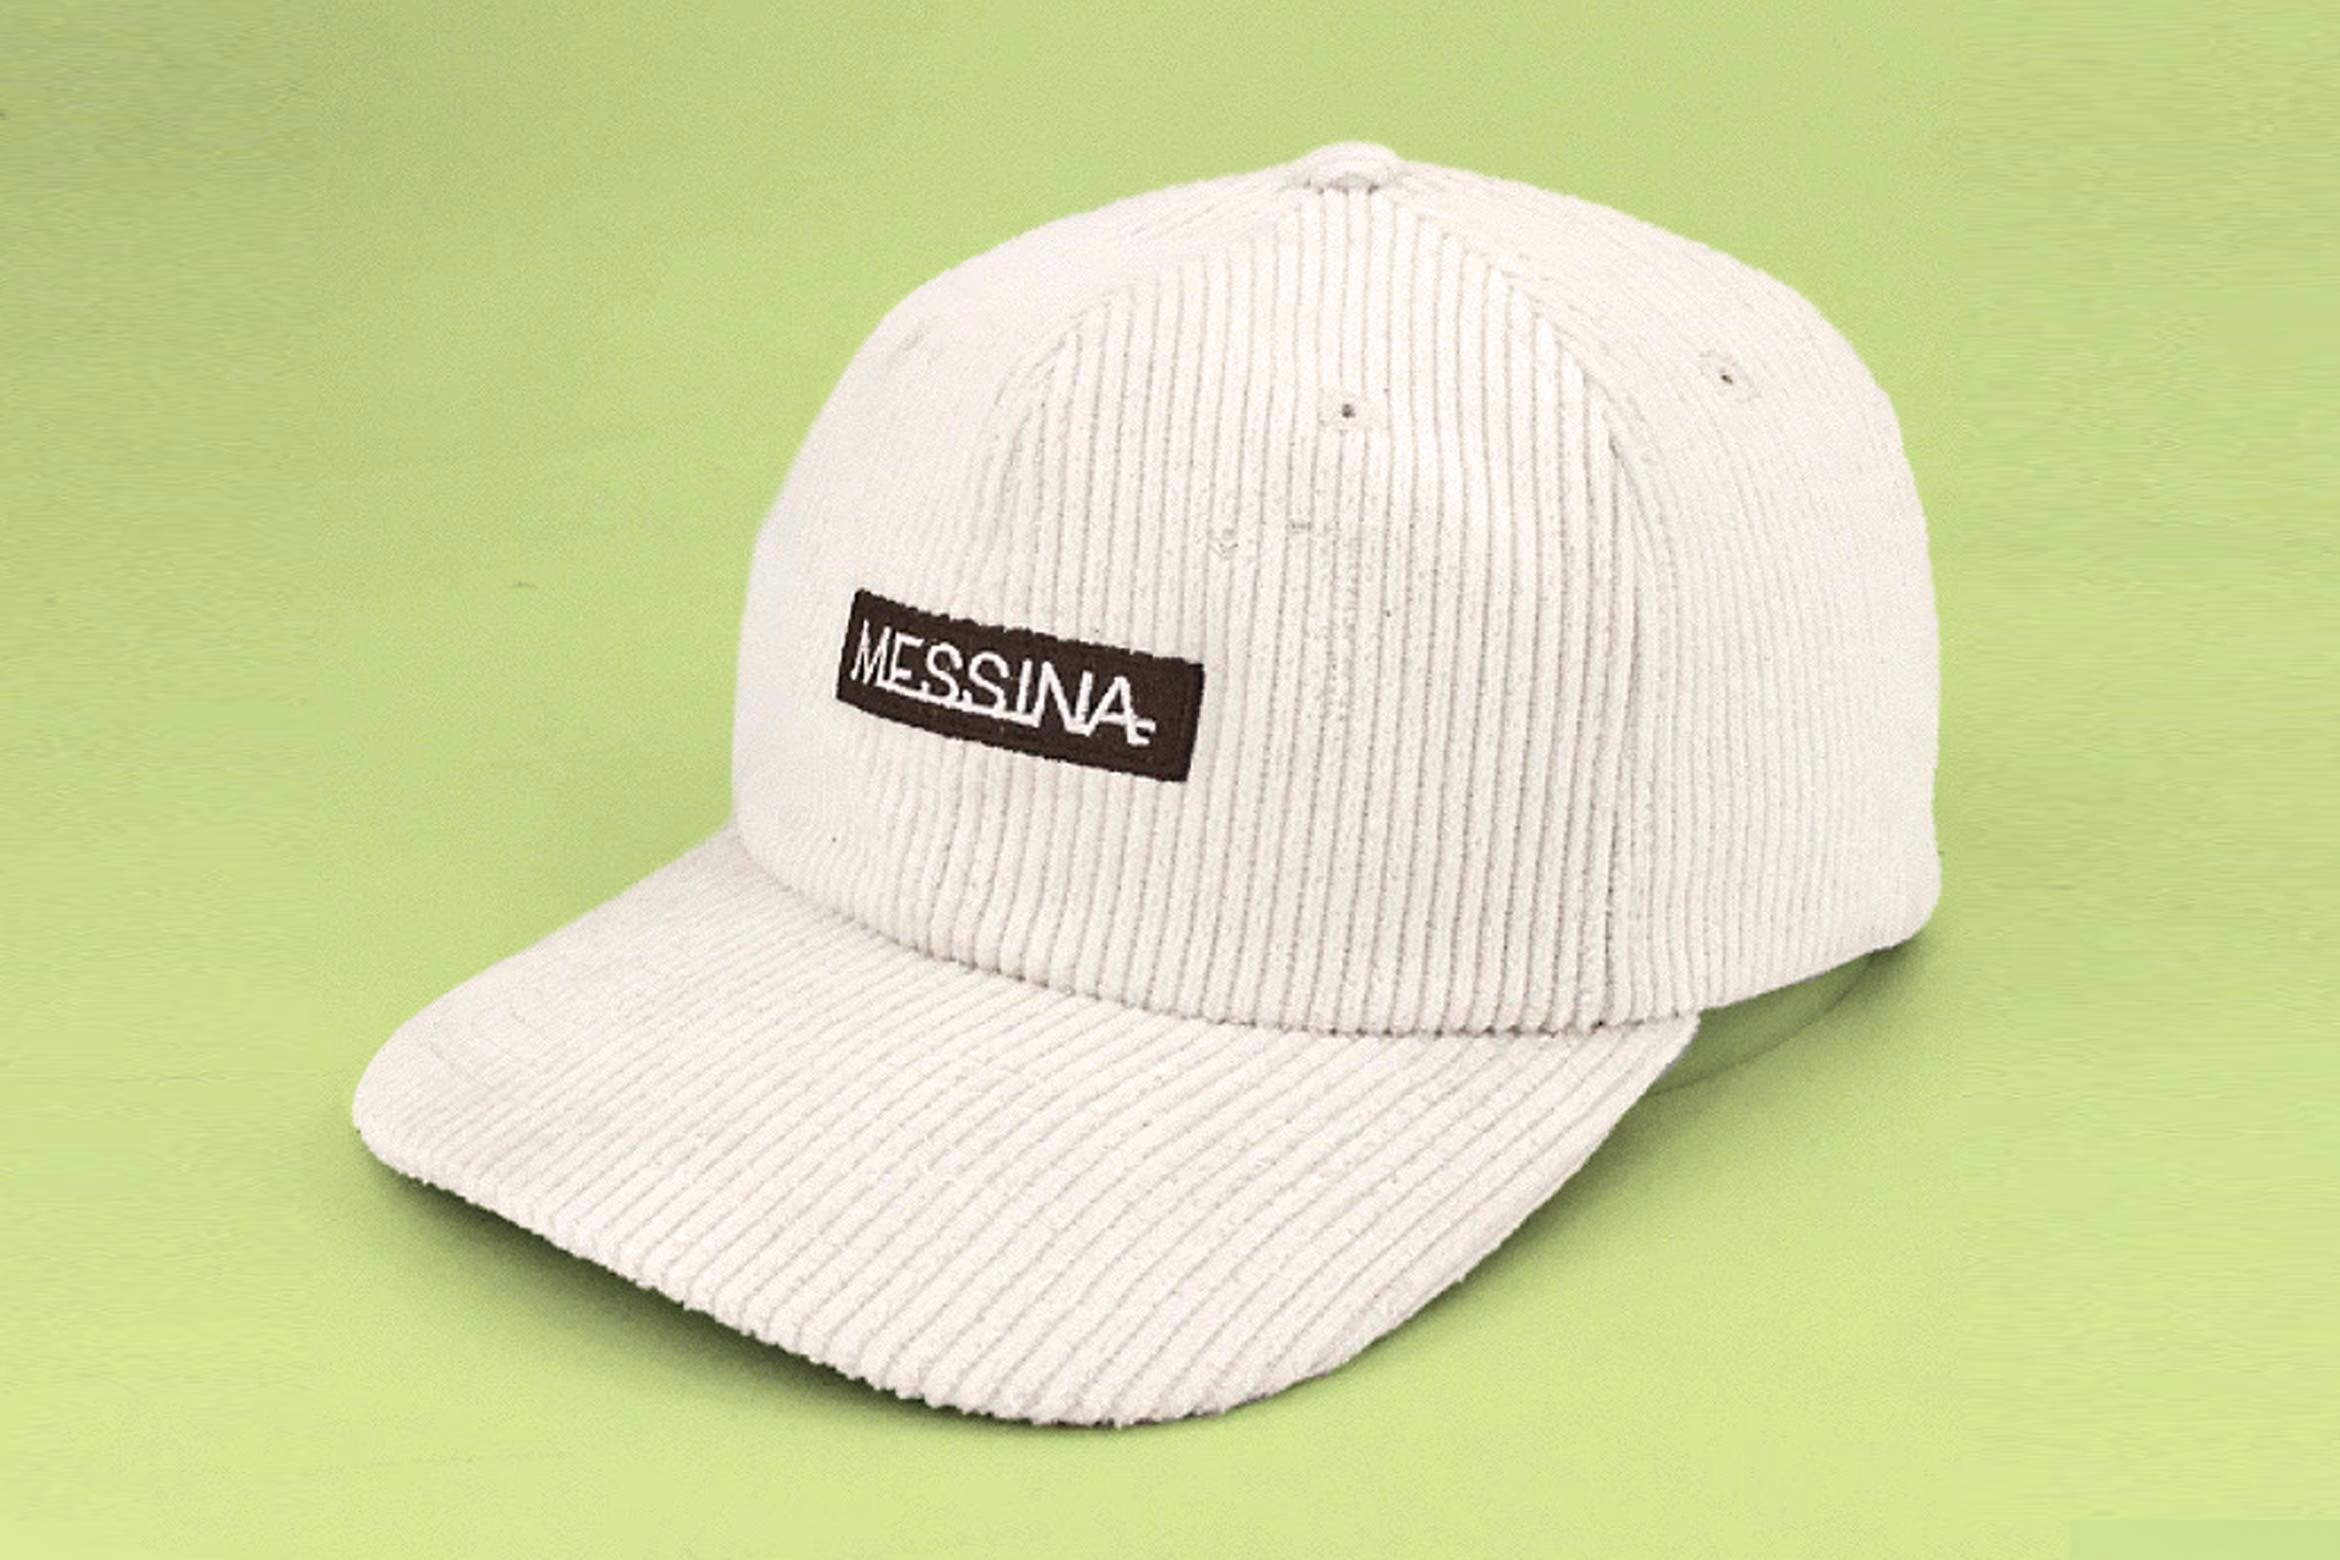 Messina Caps In Store Now